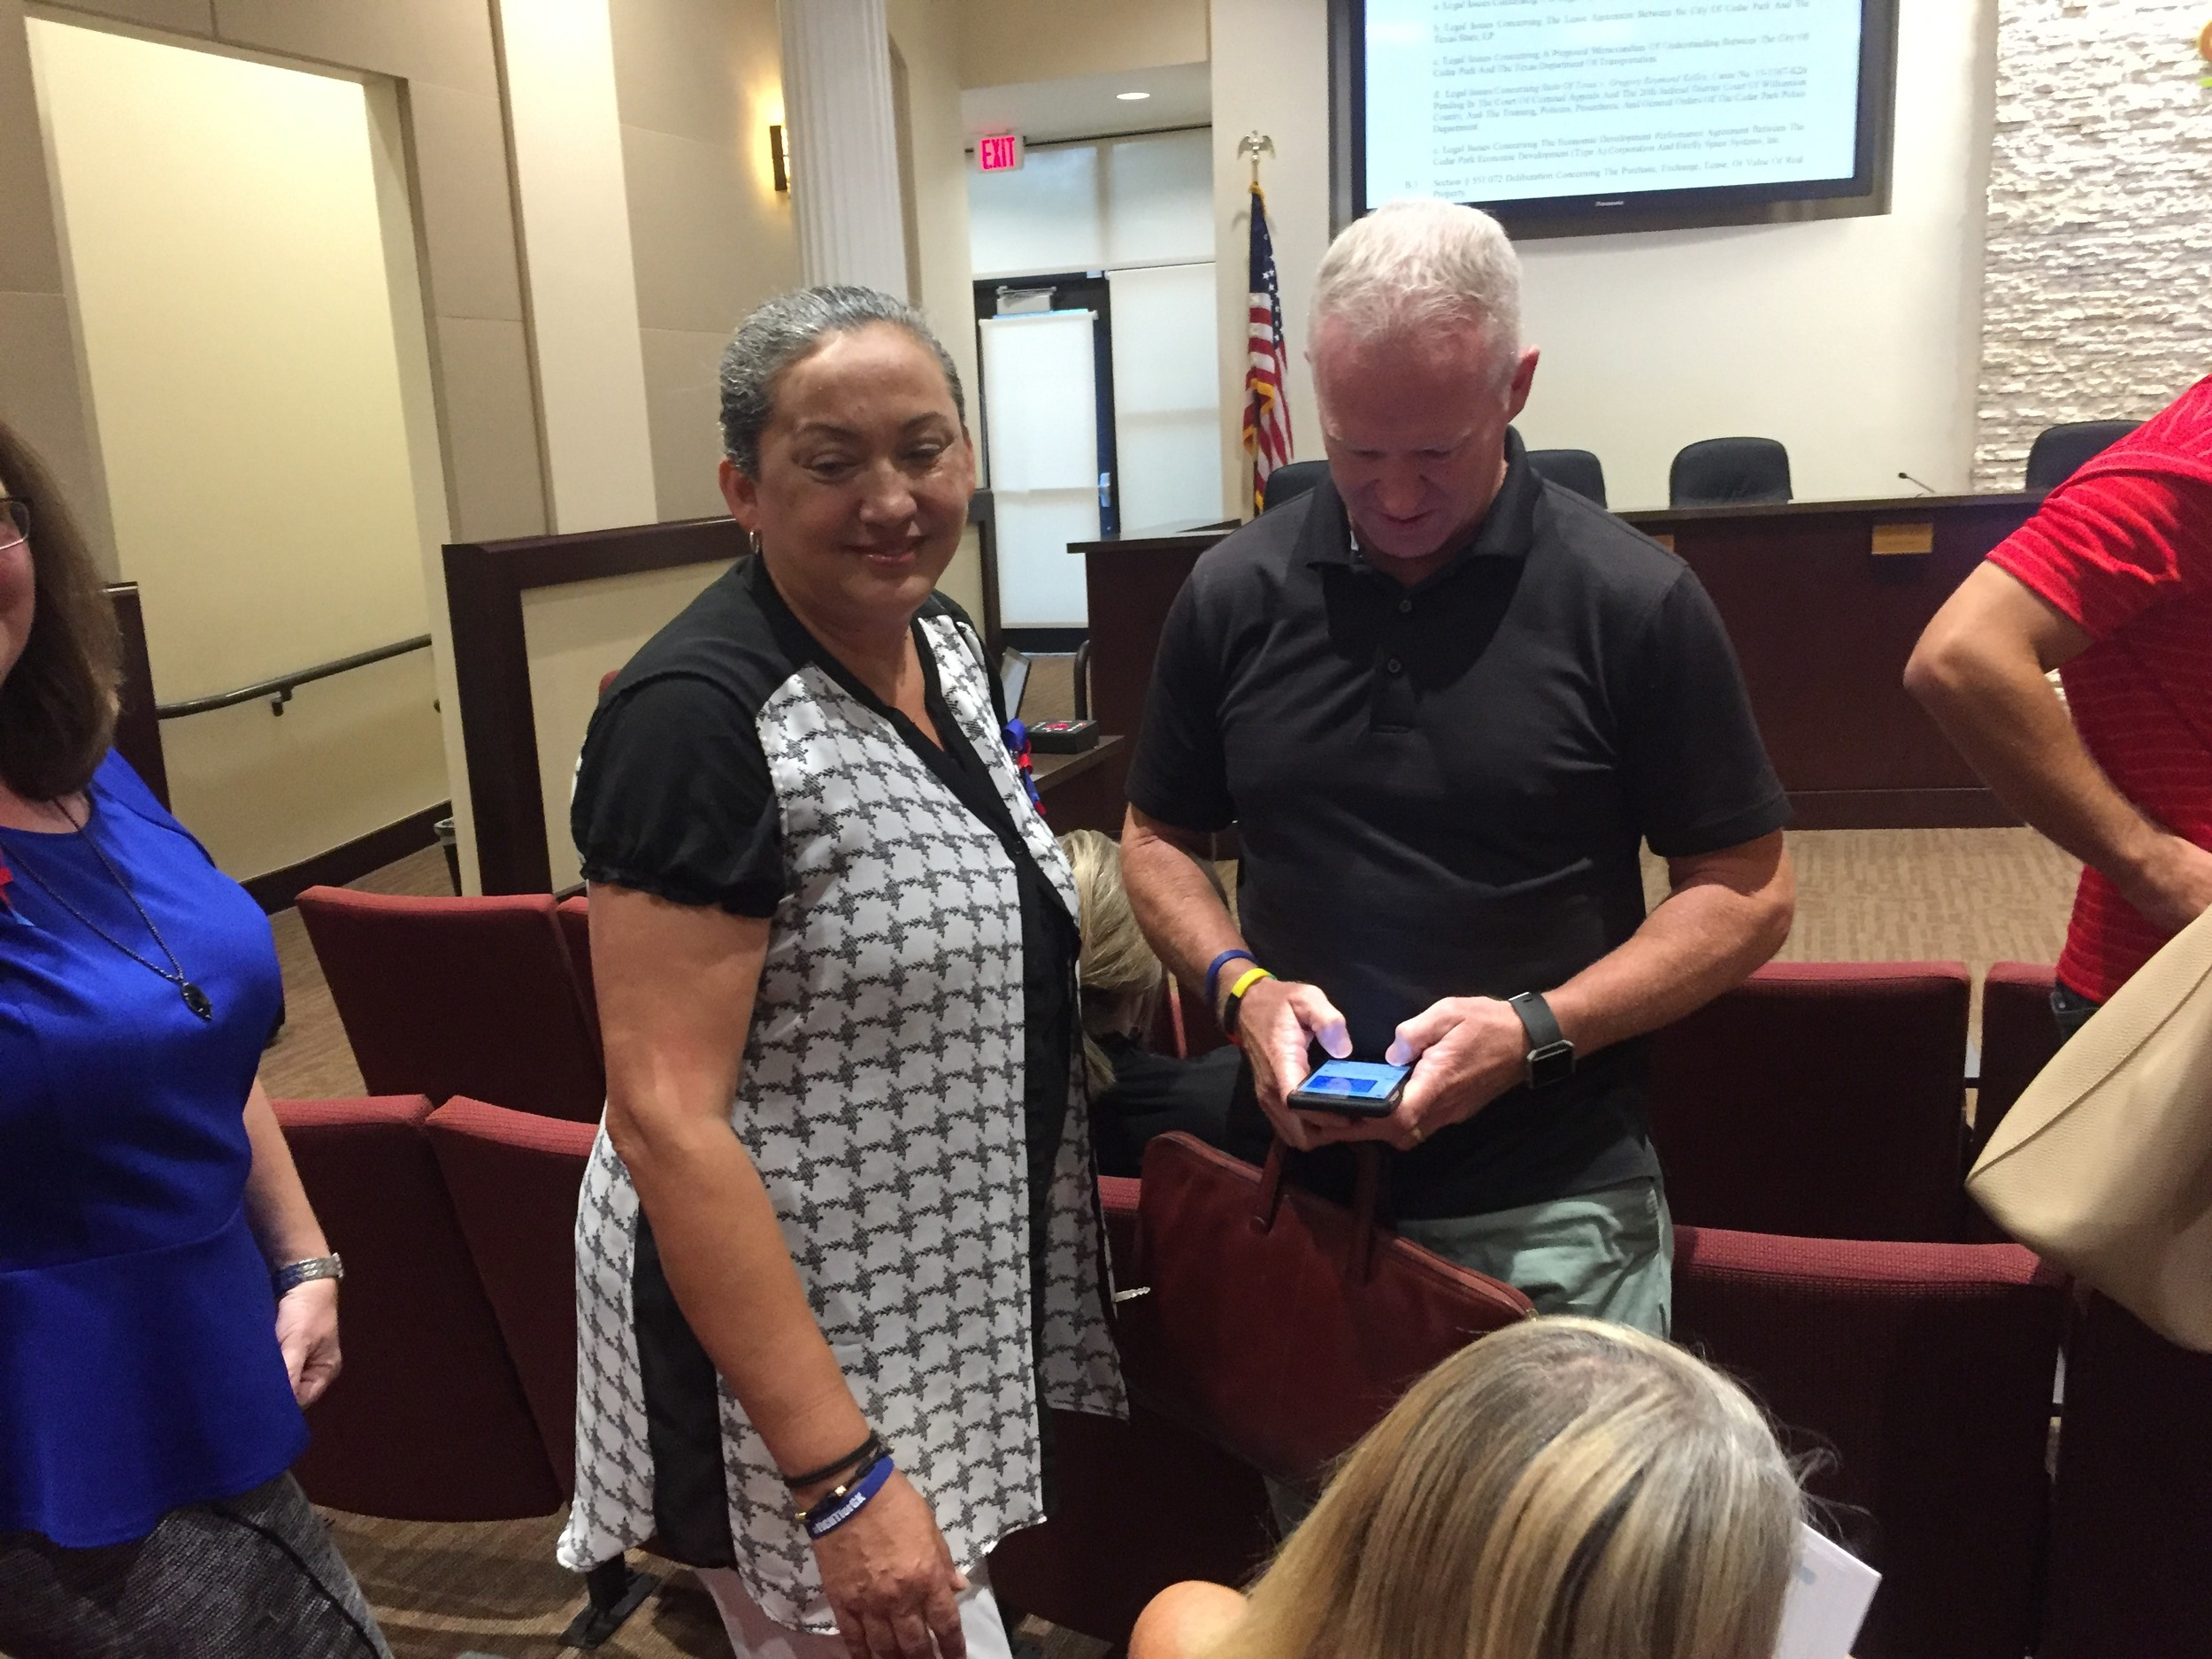 Rosa Kelley, left, the mother of Greg Kelley, talked with supporters during a recess at the Cedar Park City Council meeting Thursday night. Kelley made an impassioned plea for the firing of the police chief and the lead police investigator for their roles in the Kelley investigation.